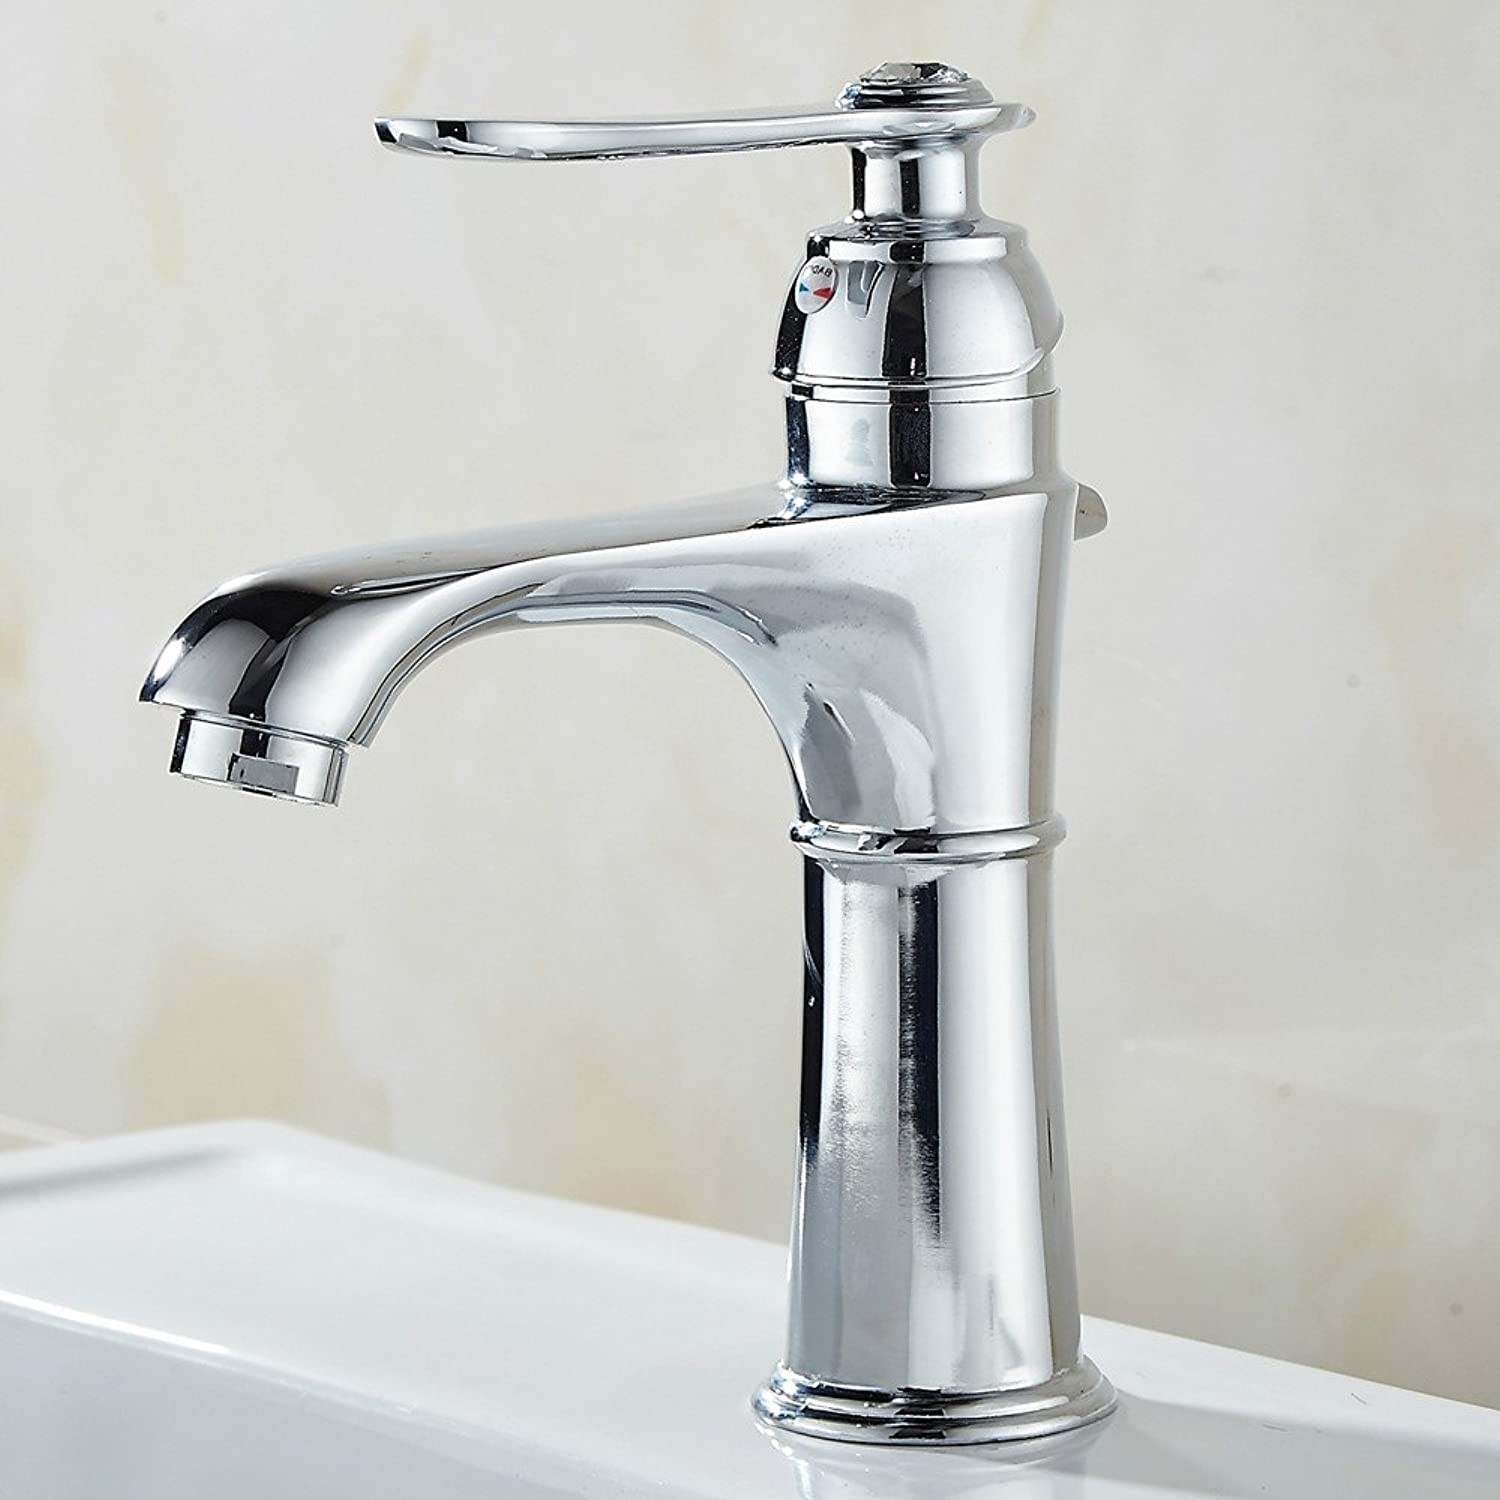 LHbox Basin Mixer Tap Bathroom Sink Faucet Single hole face hot and cold water faucet basin faucet basin sink Faucet